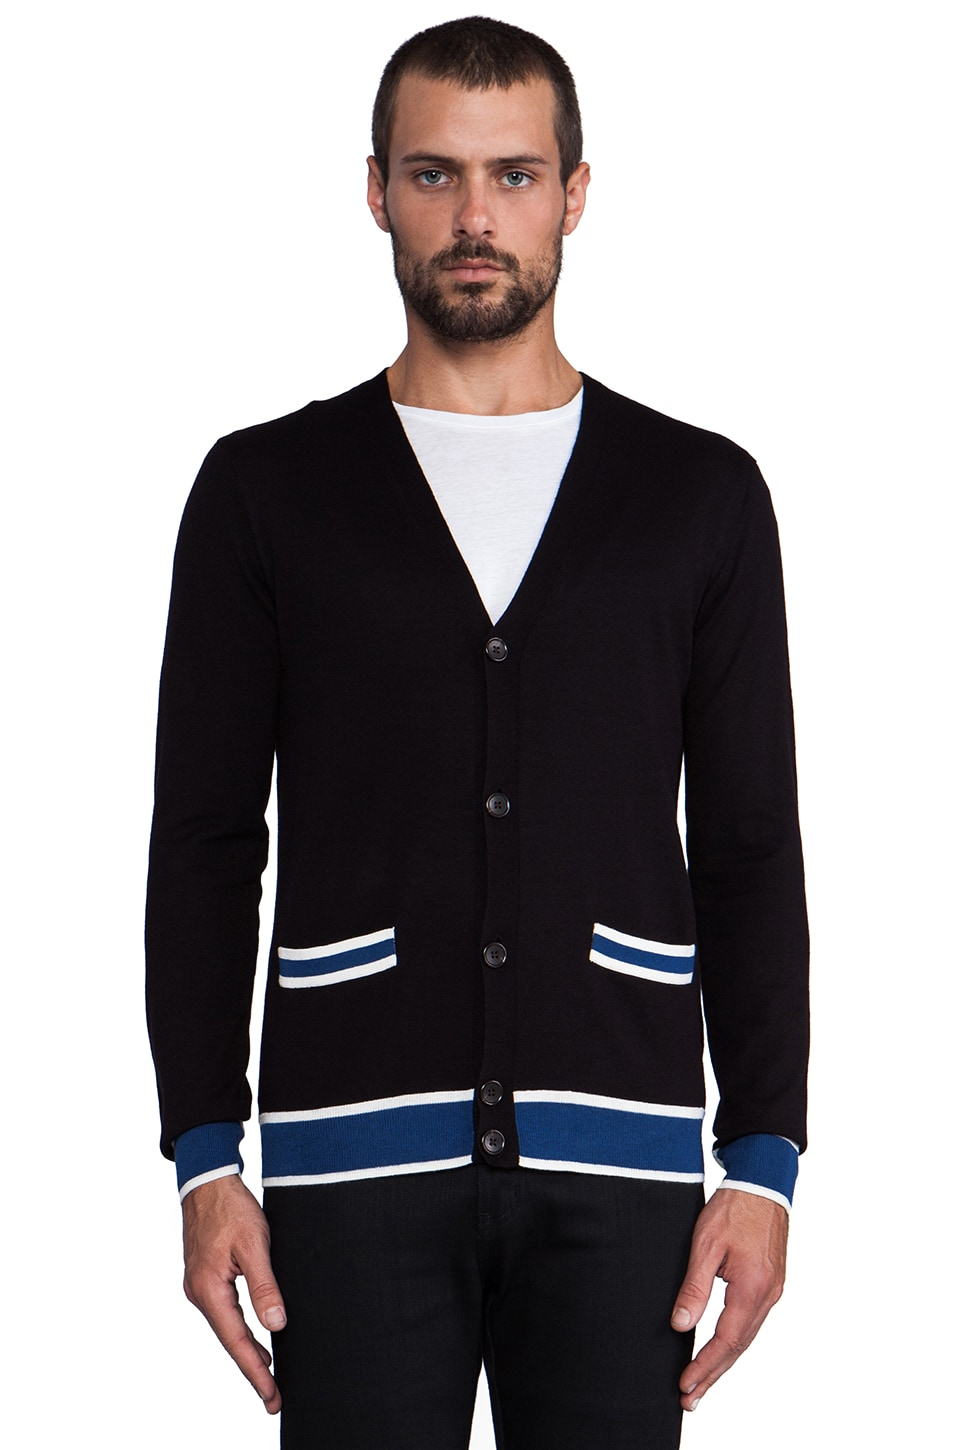 Marc by Marc Jacobs Cashmere Cardigan Sweater in Black Multi